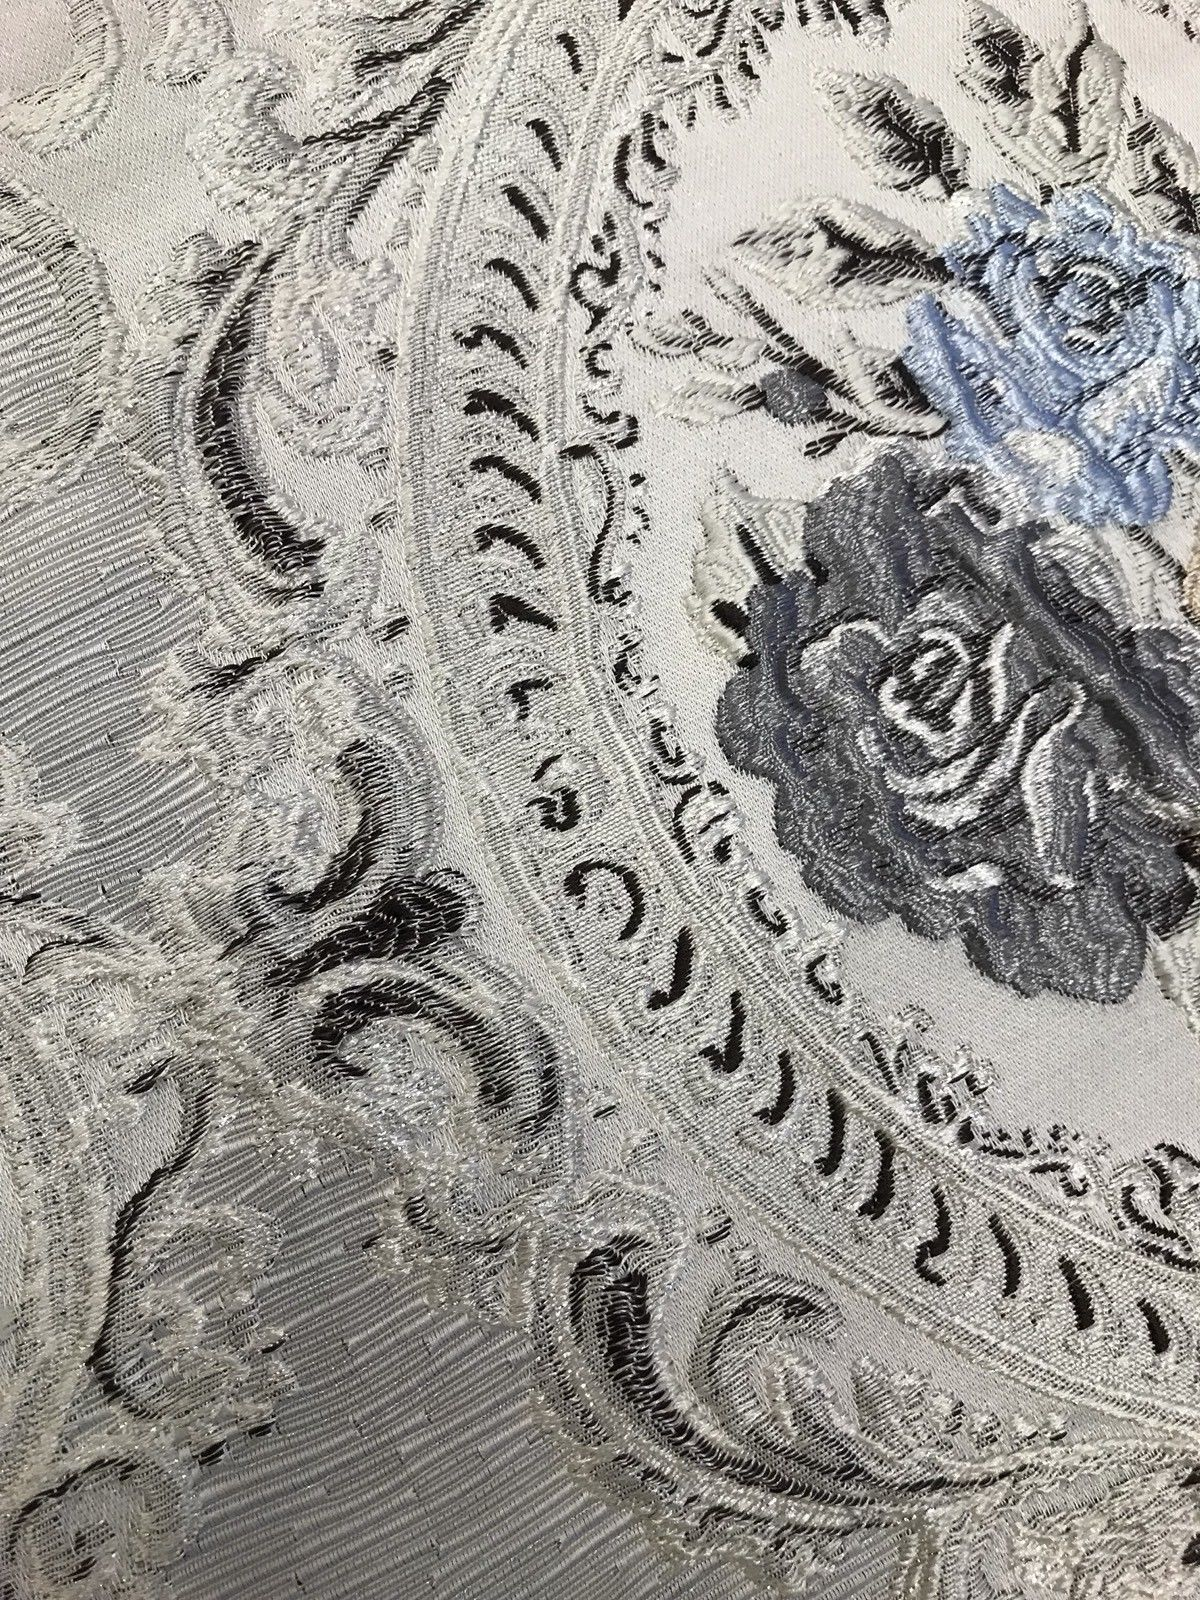 Designer Brocade Satin Fabric- Antique White & Blue Roses - Upholstery Damask - Fancy Styles Fabric Pierre Frey Lee Jofa